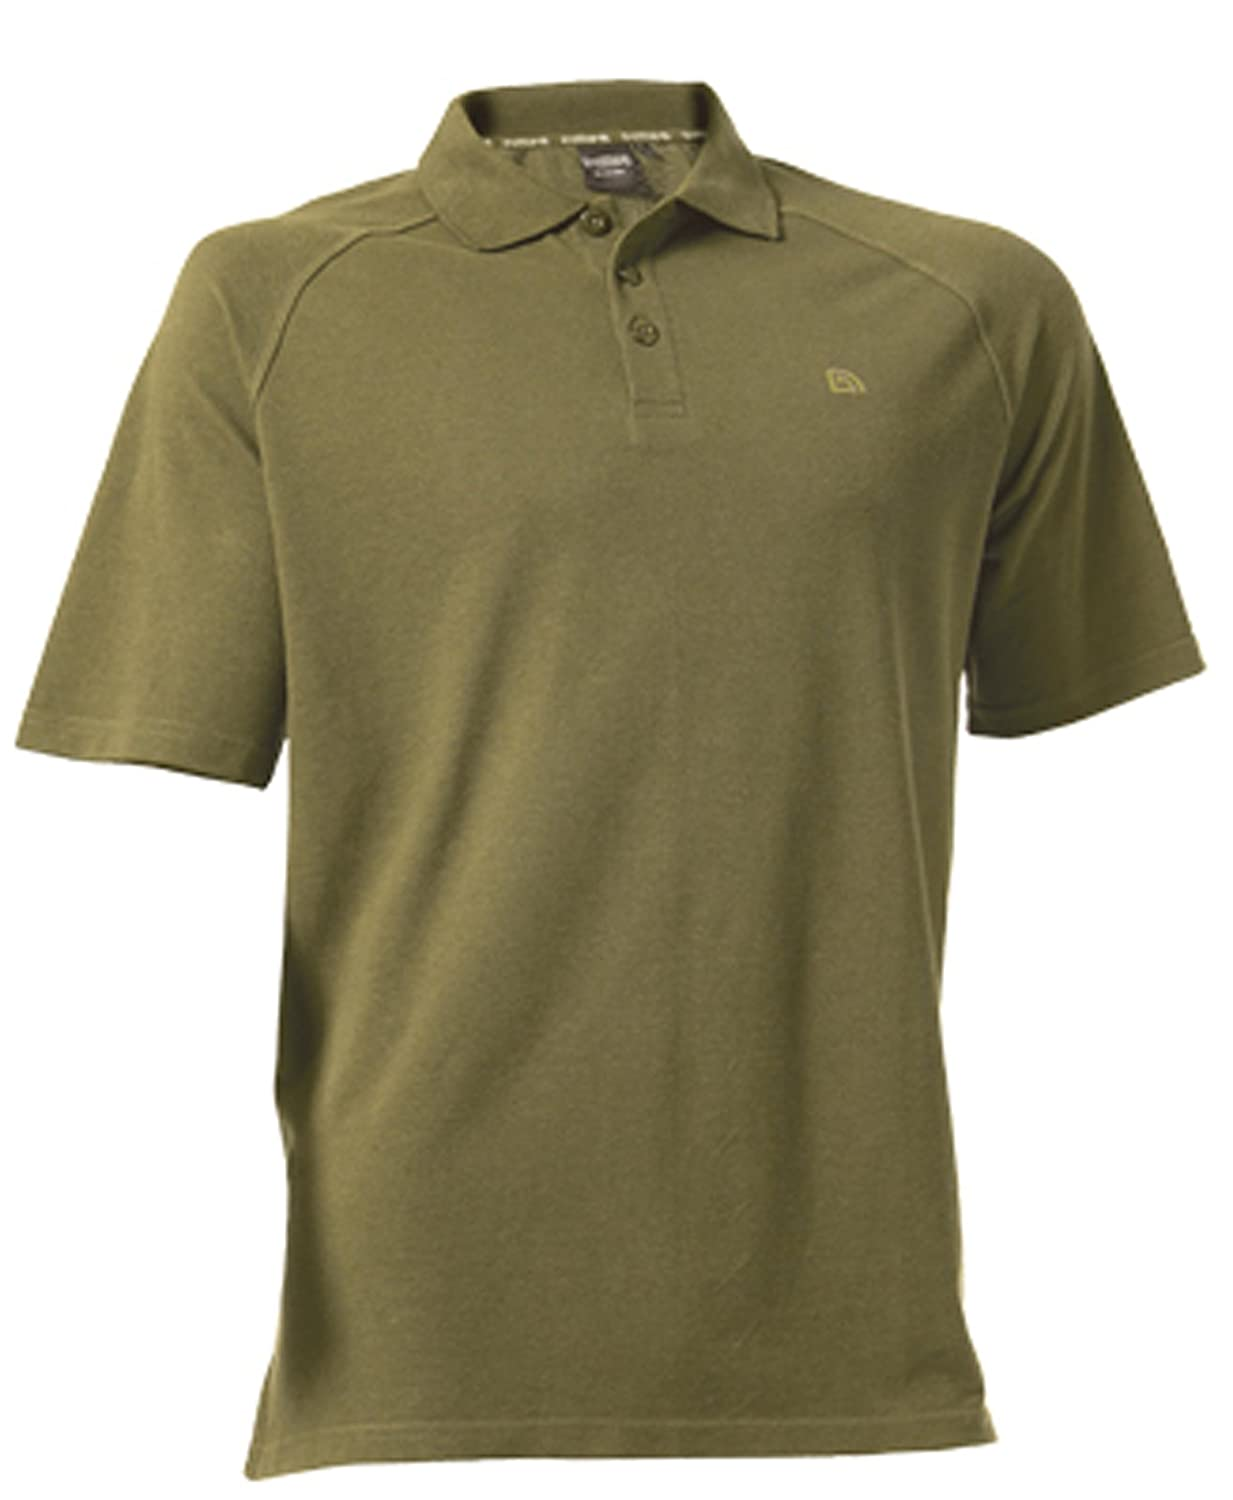 45ed9fa8ec1 Polo Shirt in Olive Green Colour - Large by Trakker  Amazon.co.uk  Sports    Outdoors